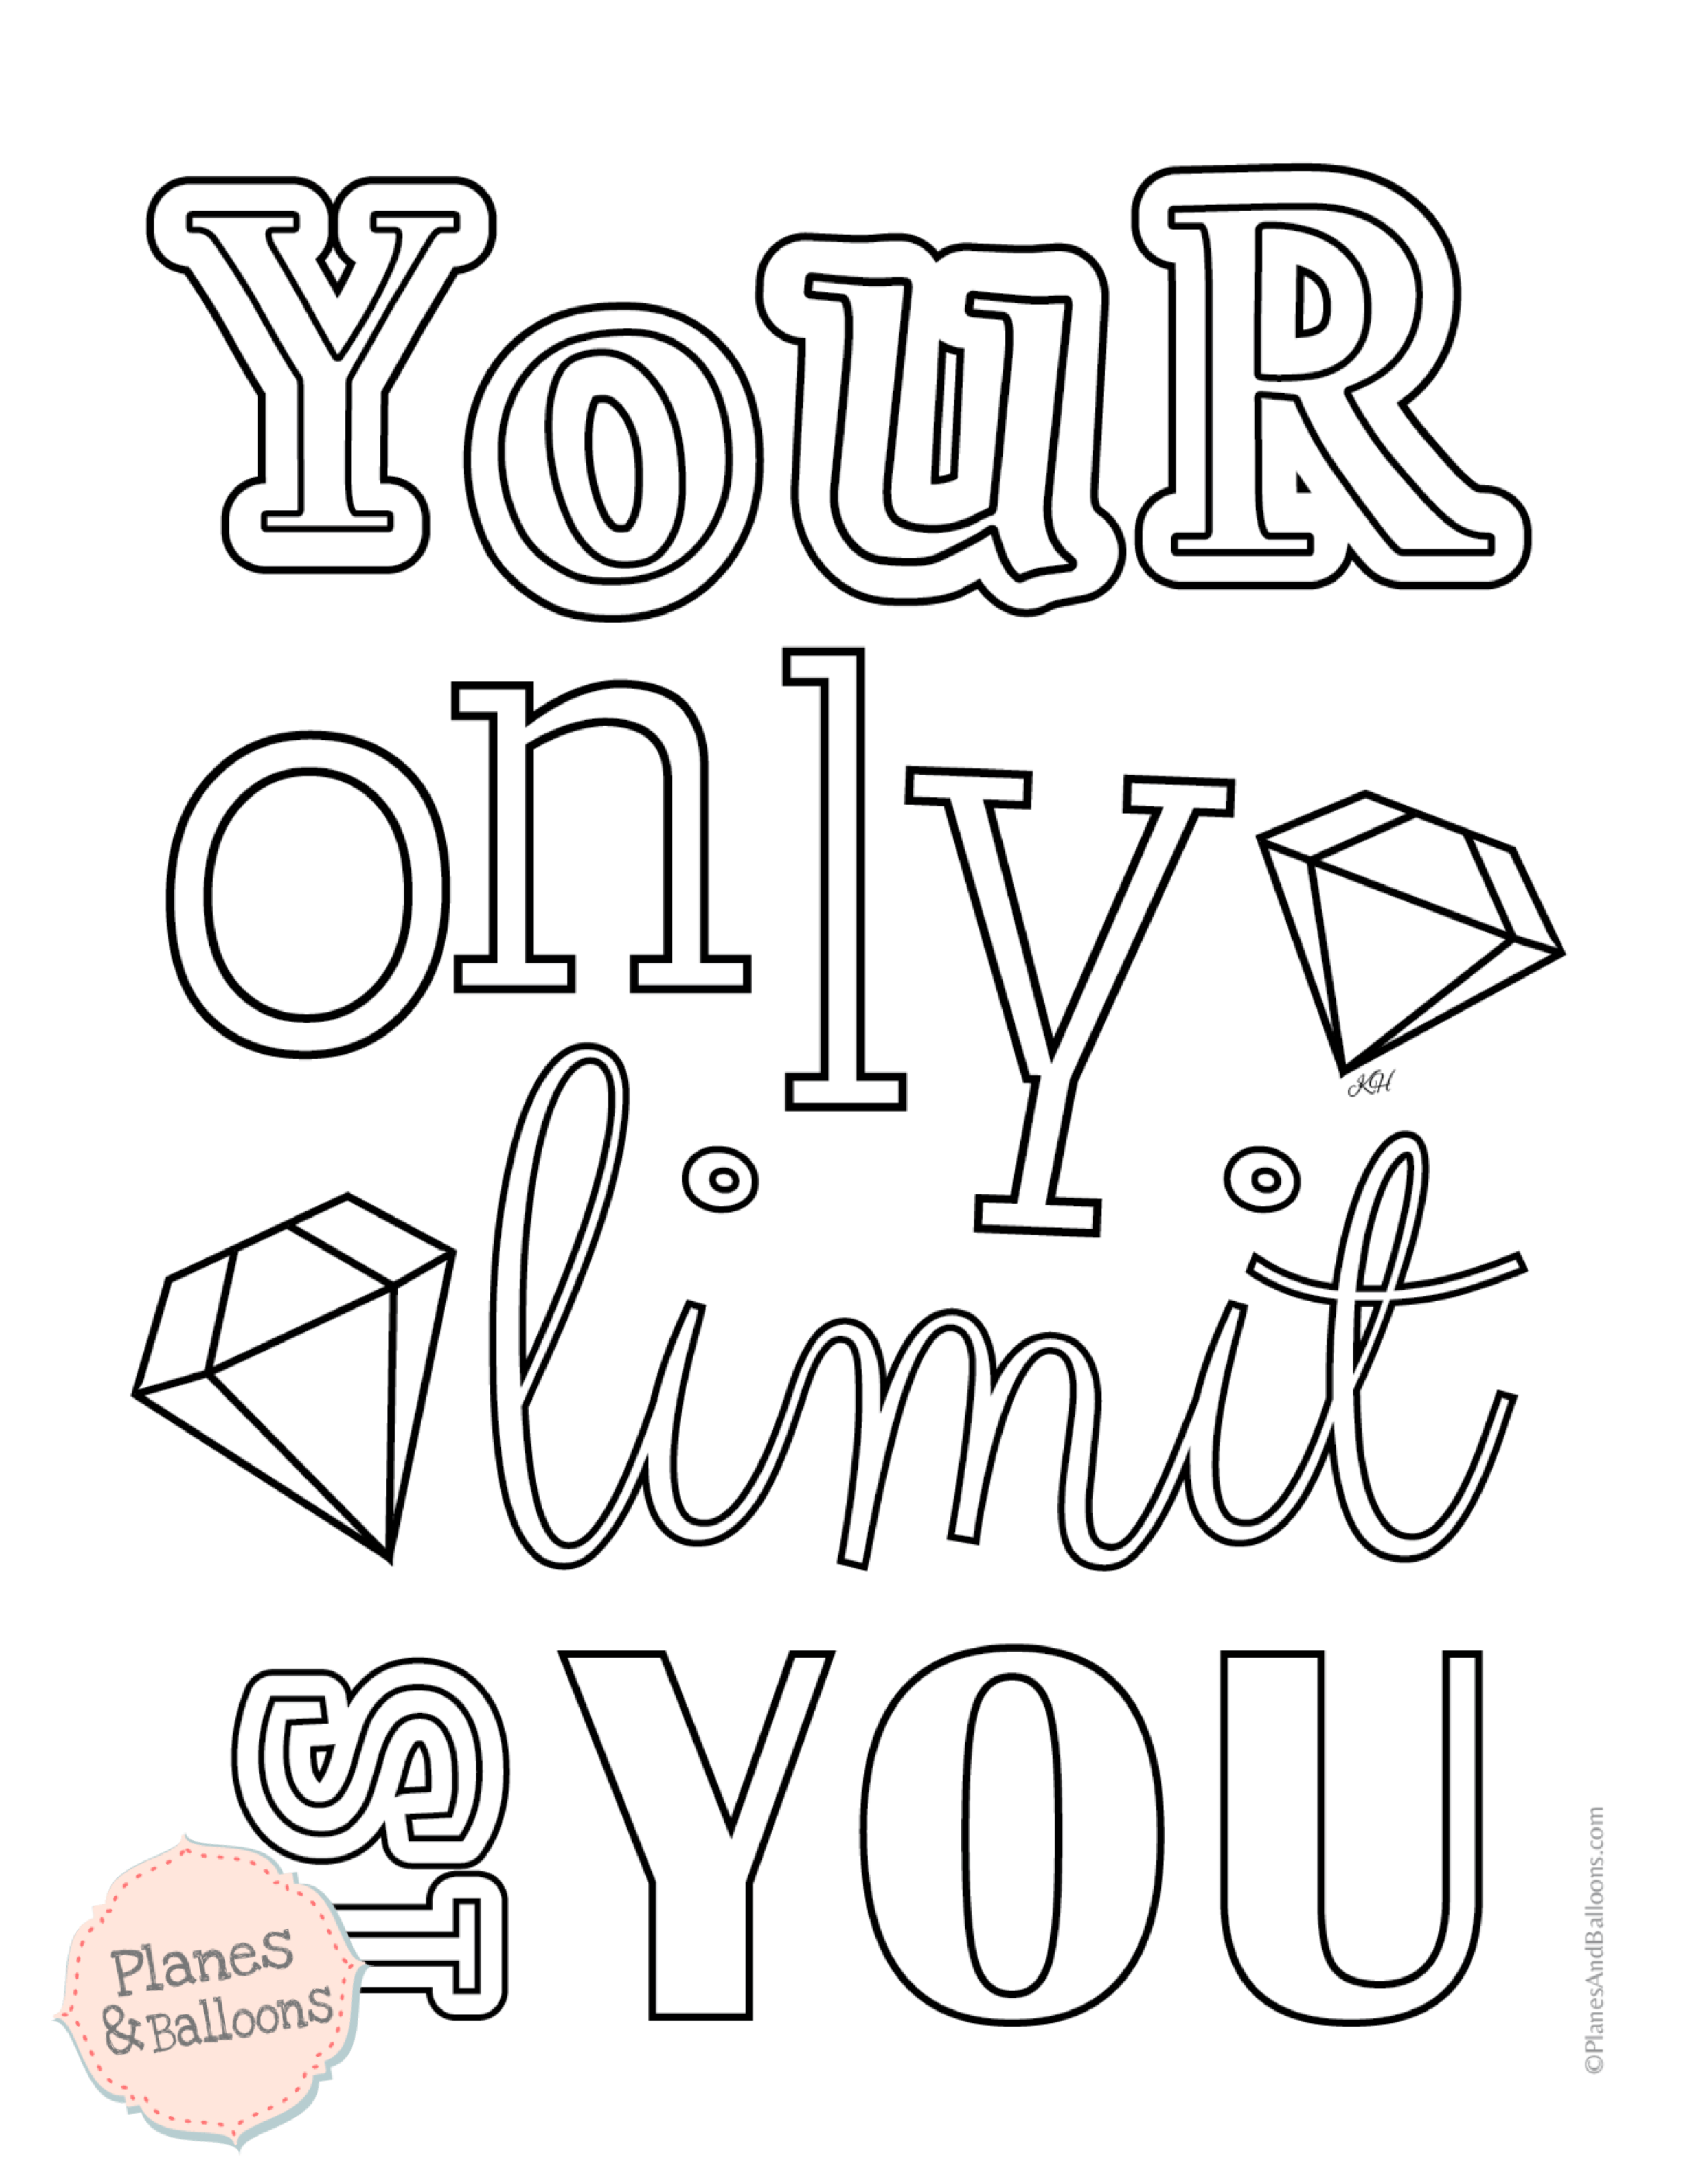 motivational coloring pages for adults - Planes & Balloons ...